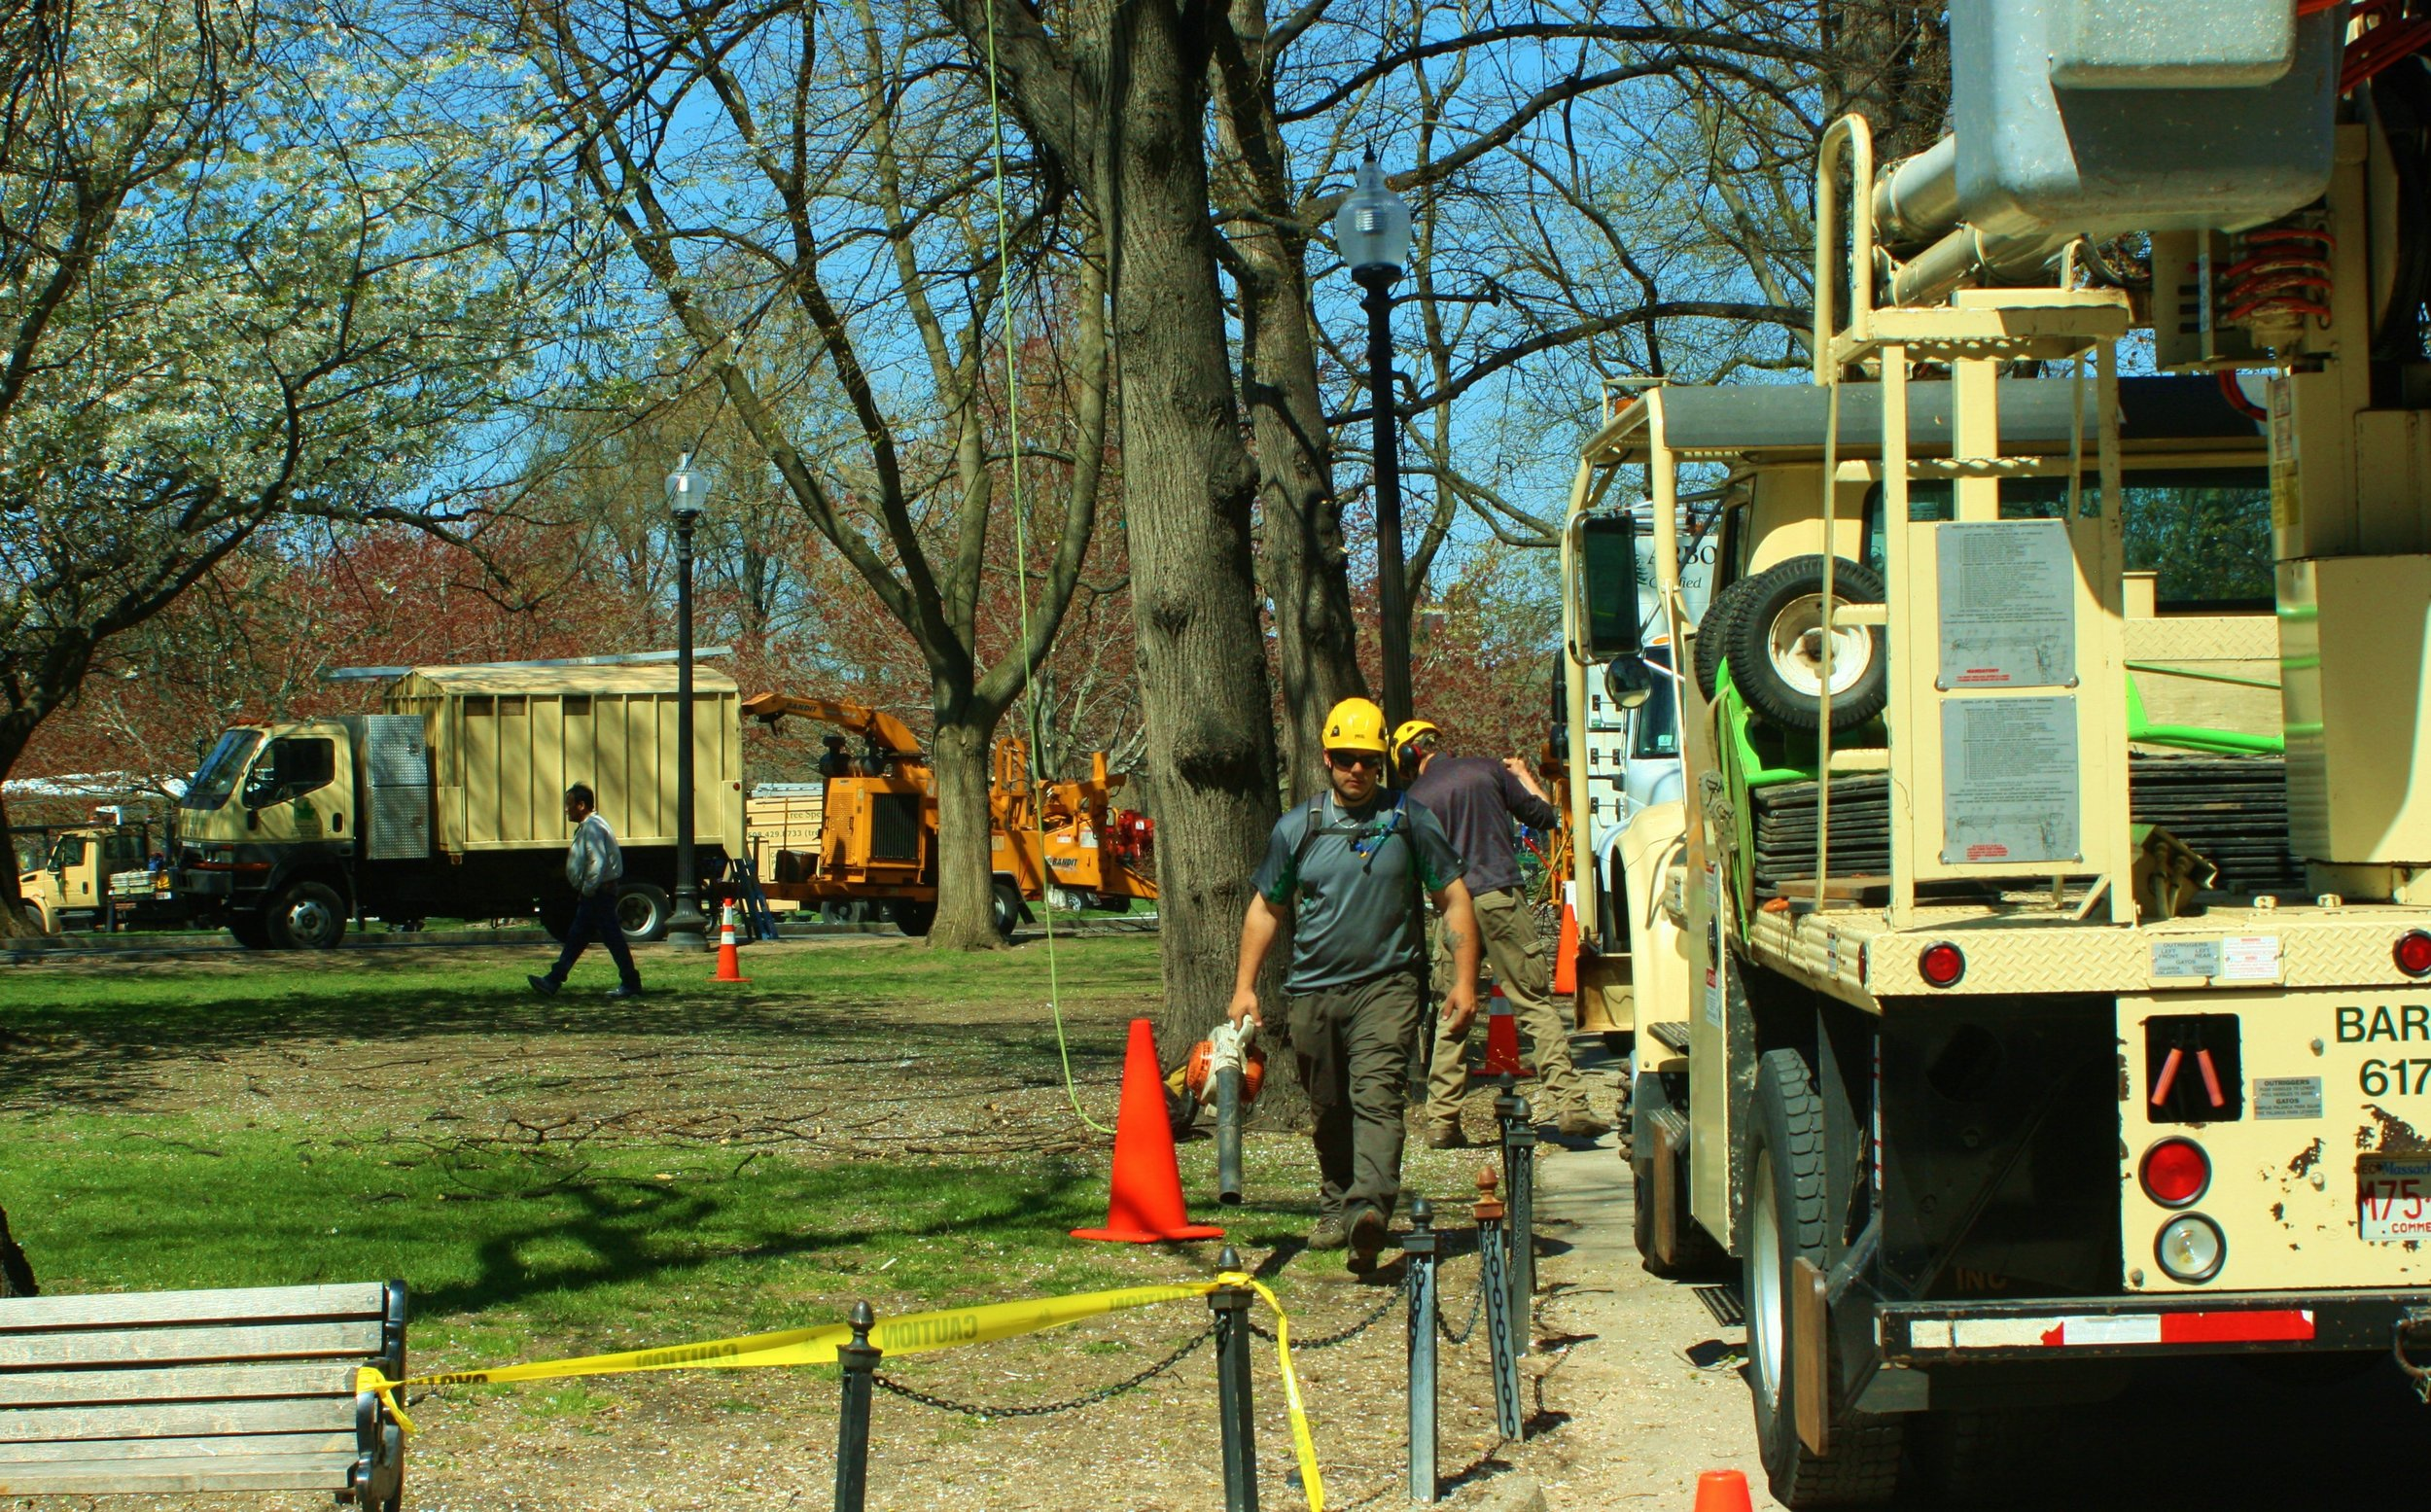 BTSE joined forces with other professional arborists to help care for public trees throughout Massachusetts